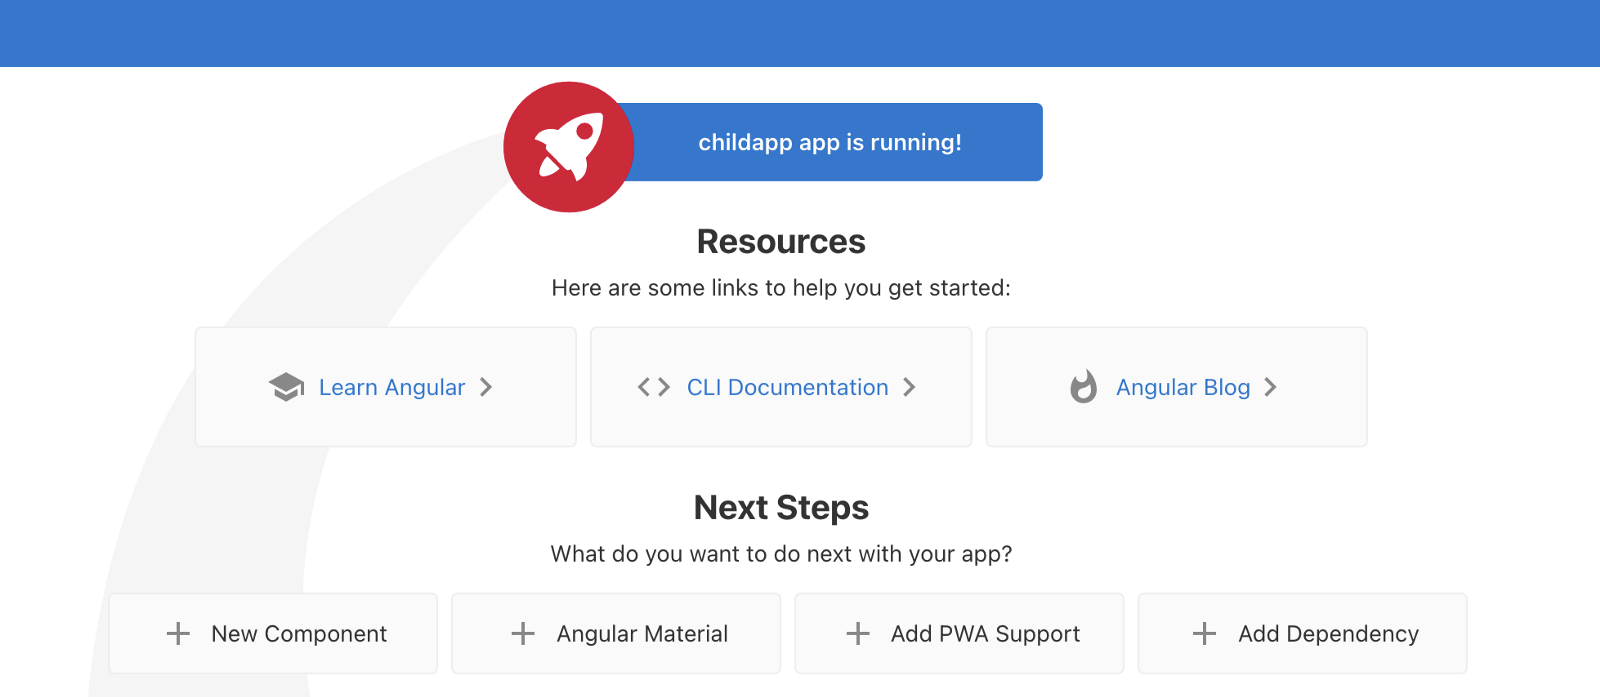 """A banner says,  """"Childapp app is running!"""" Then a heading says,  """"Resources,"""" Here are some links to help you get started: Learn Angular, CLI Documentation, Angular Blog. Another heading:  """"Next Steps"""", What do you want to do with your app? New Component, Angular Material, Add PWA Support, Add Dependency."""